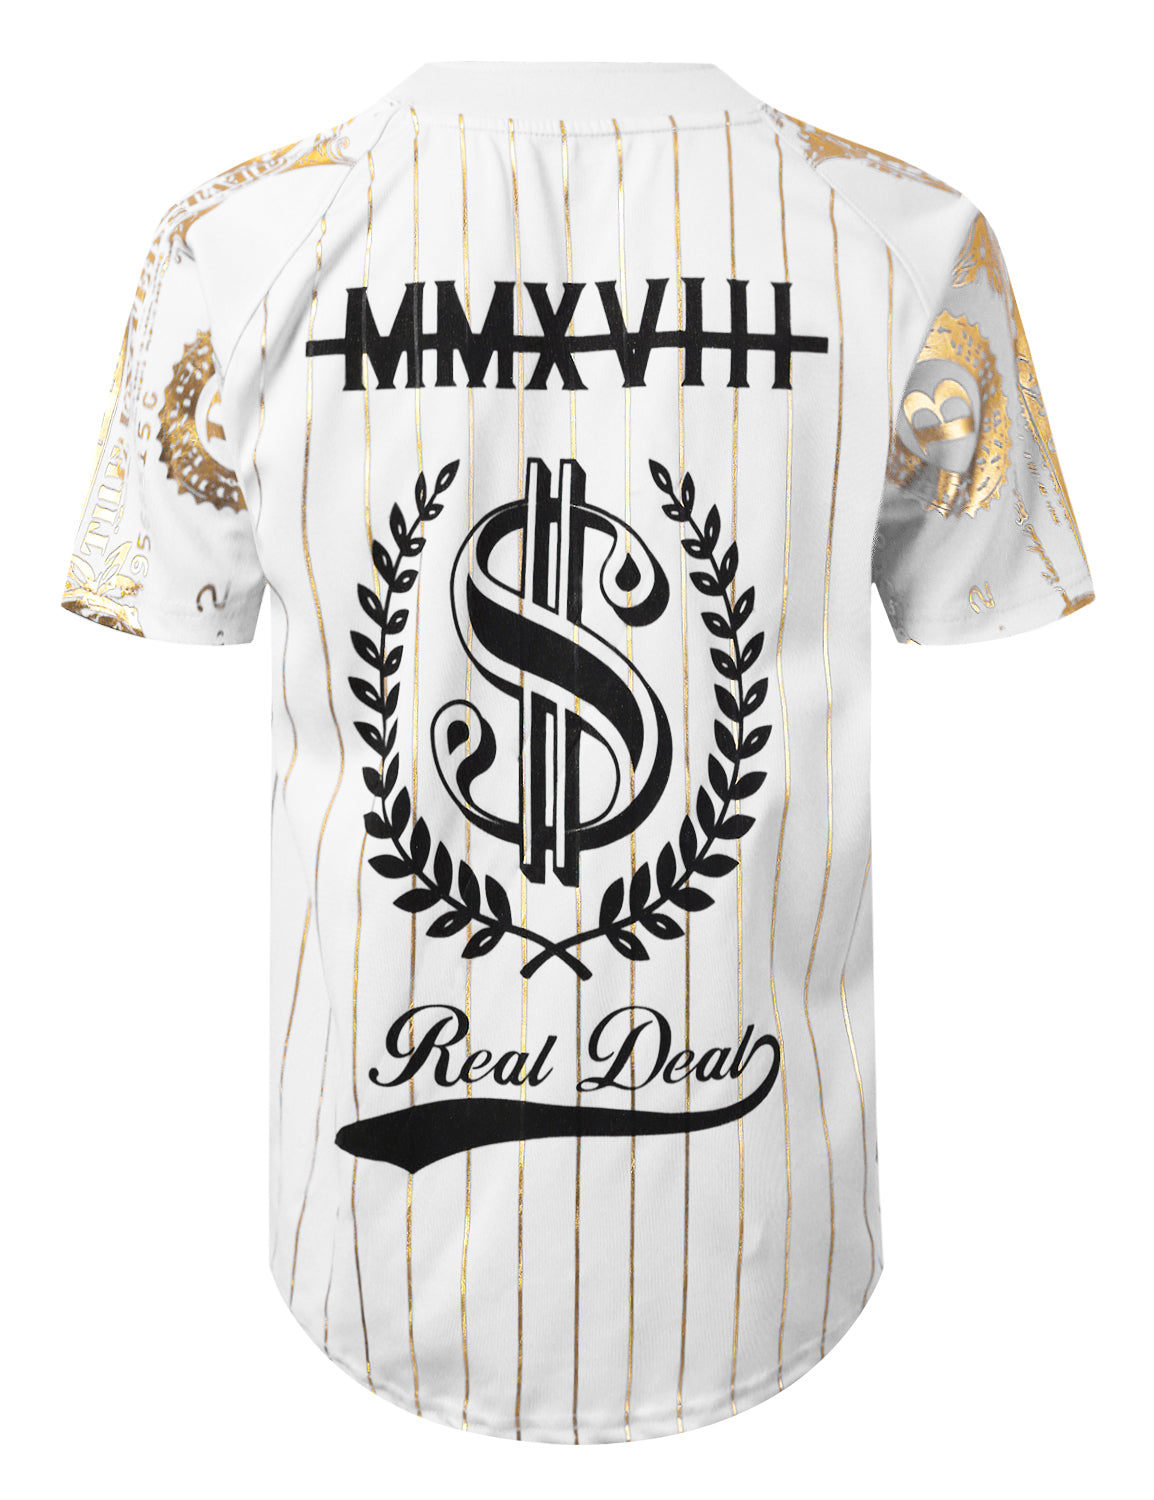 WHITE Gold Foil Baseball Jersey T-shirt - URBANCREWS